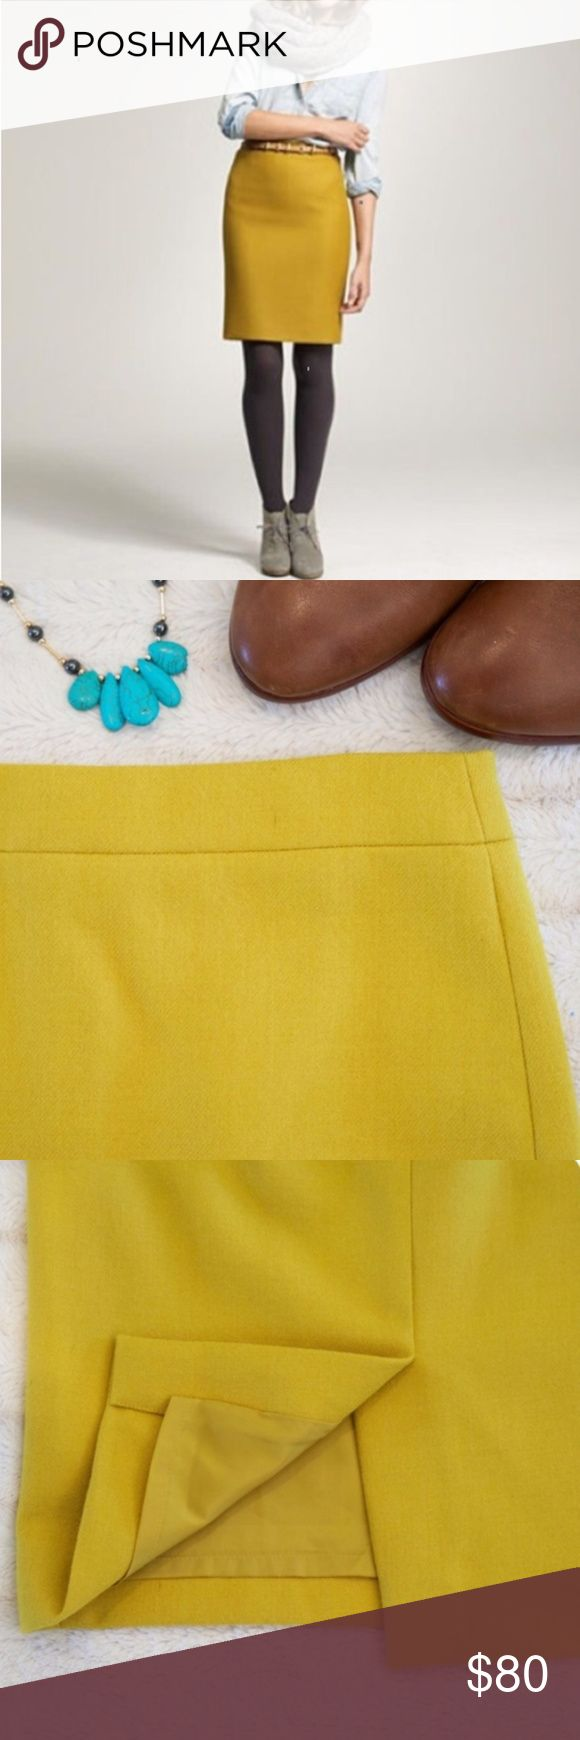 J. Crew Mustard Yellow Wool Blend Pencil Skirt 0 Wool J. Crew mustard yellow pencil skirt size 0. EUC. See pictures for measurements. J. Crew Skirts Pencil